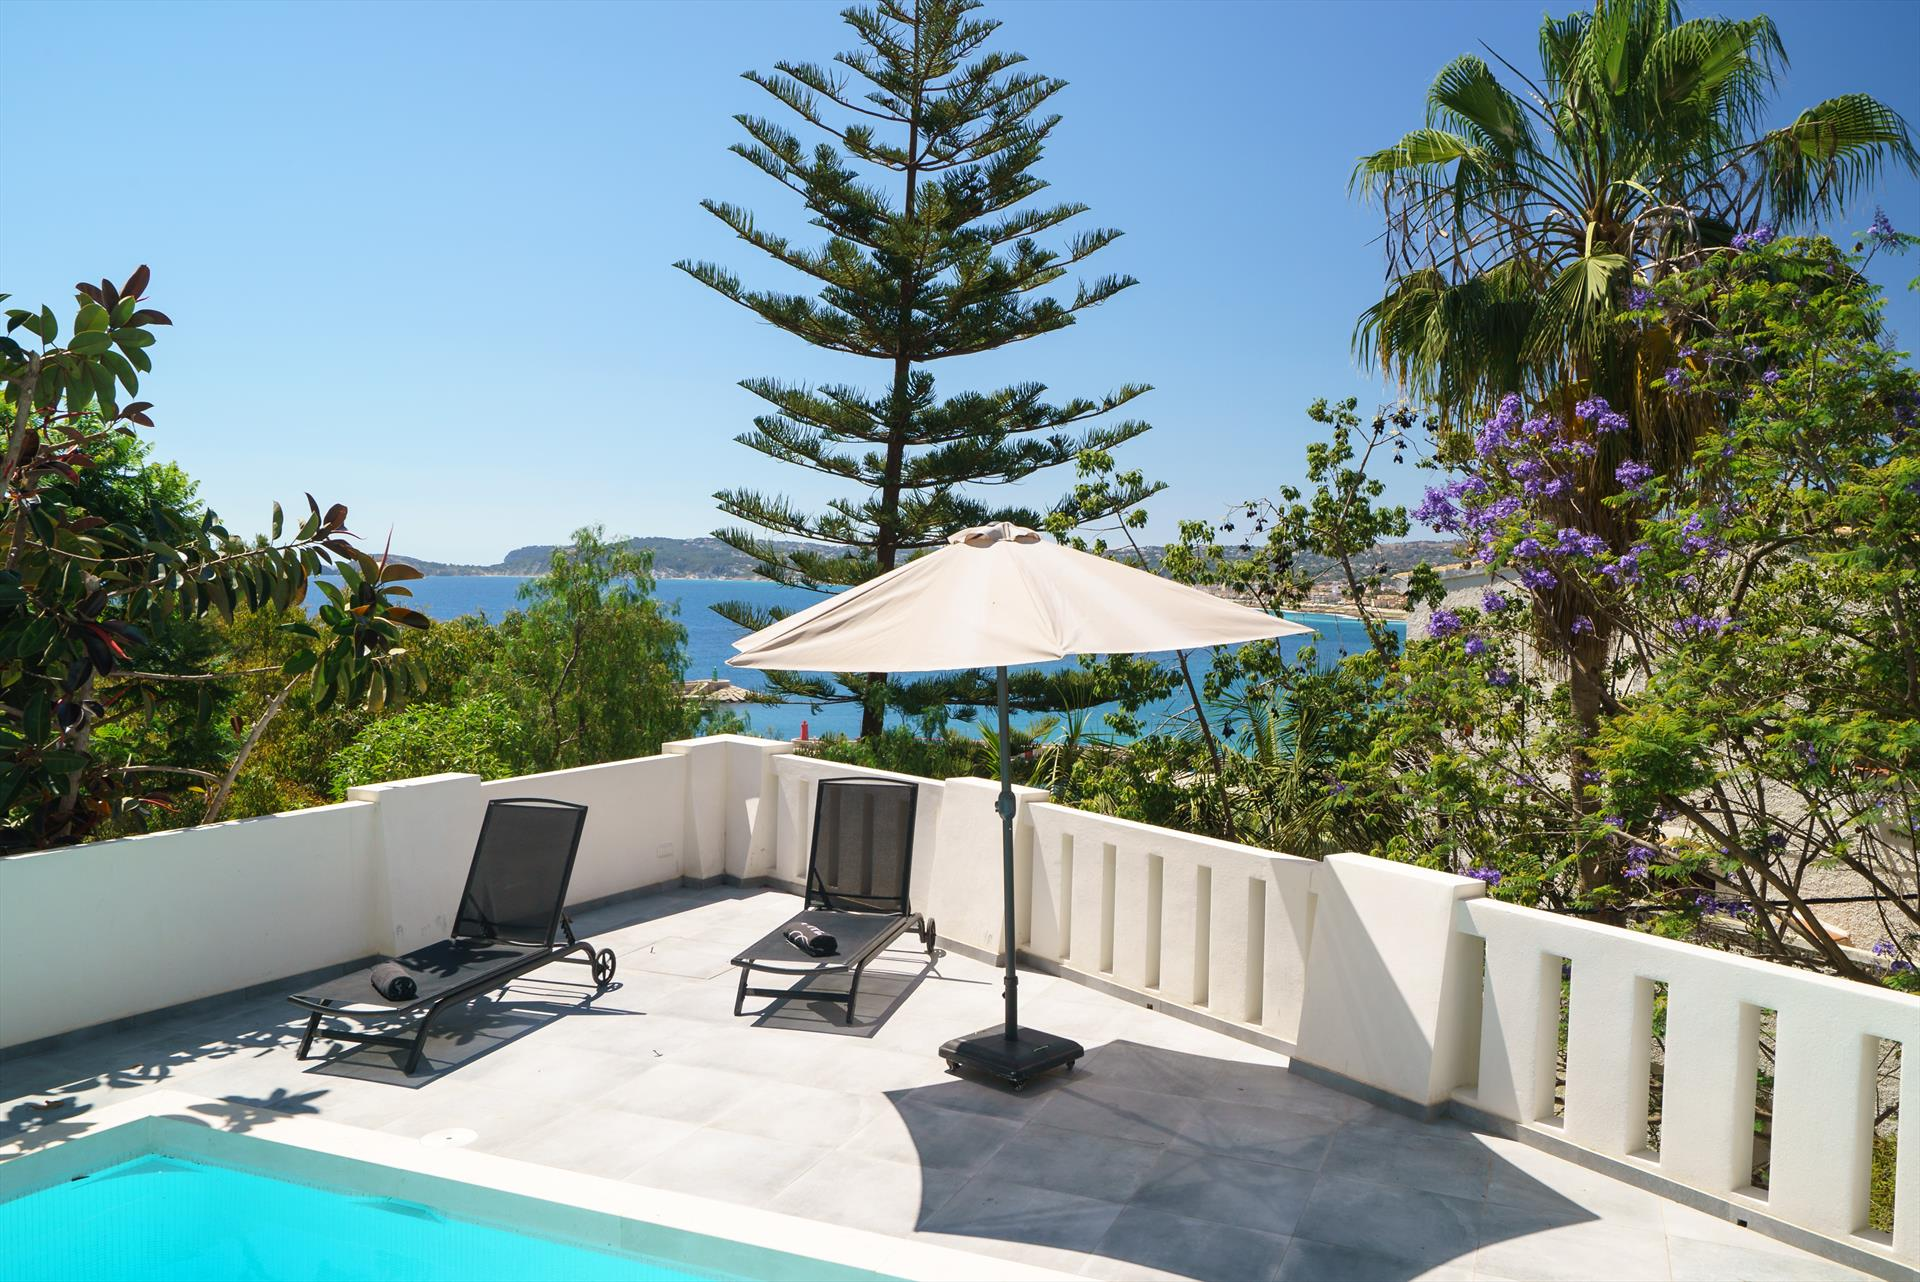 El Escondite 6 pax, Wonderful and cheerful villa  with private pool in Javea, on the Costa Blanca, Spain for 6 persons.....